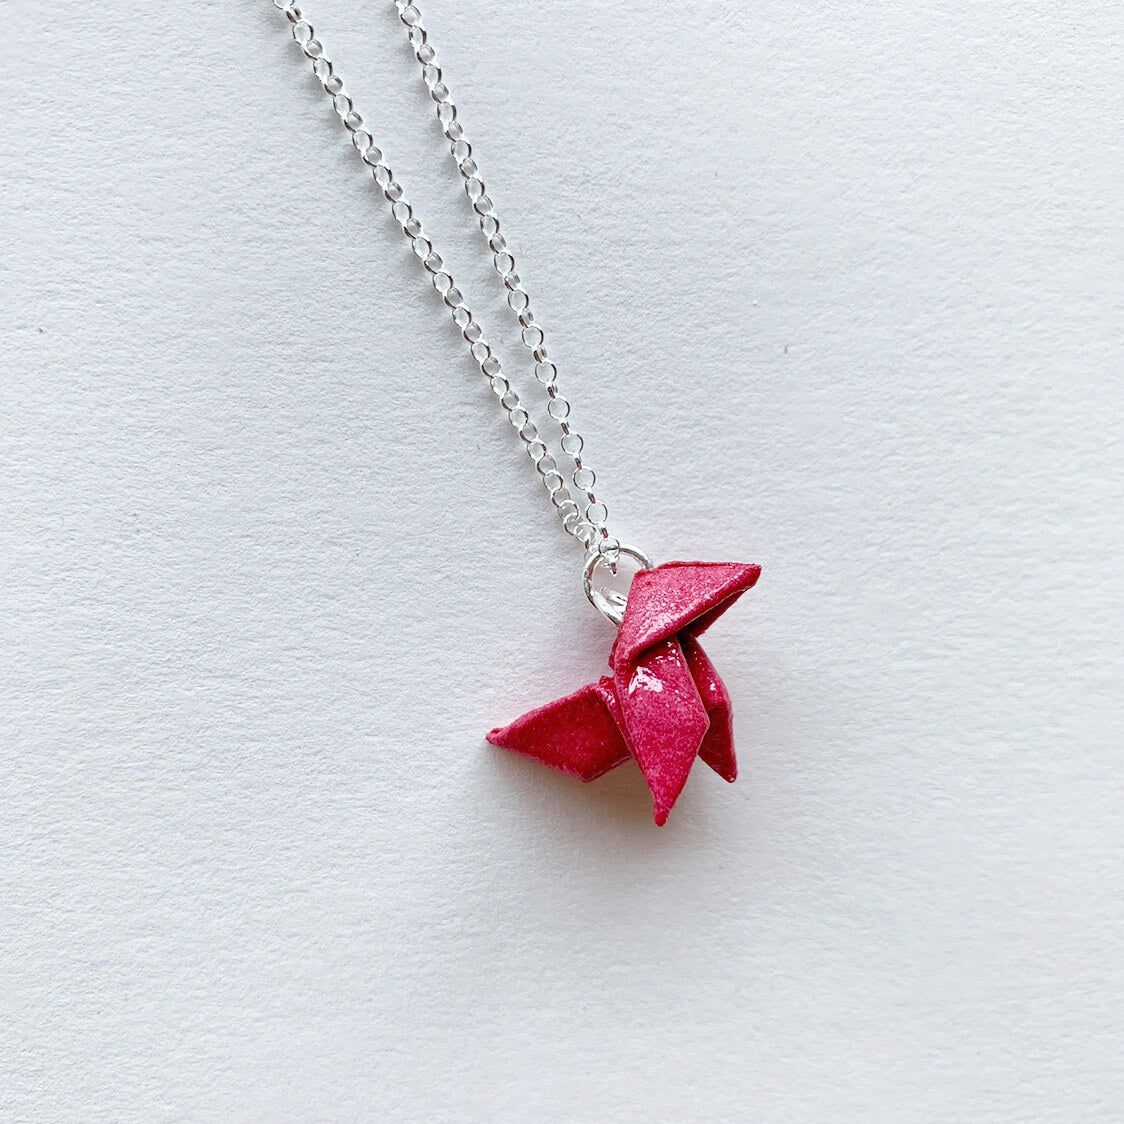 Casa de papel red origami bird paper necklace